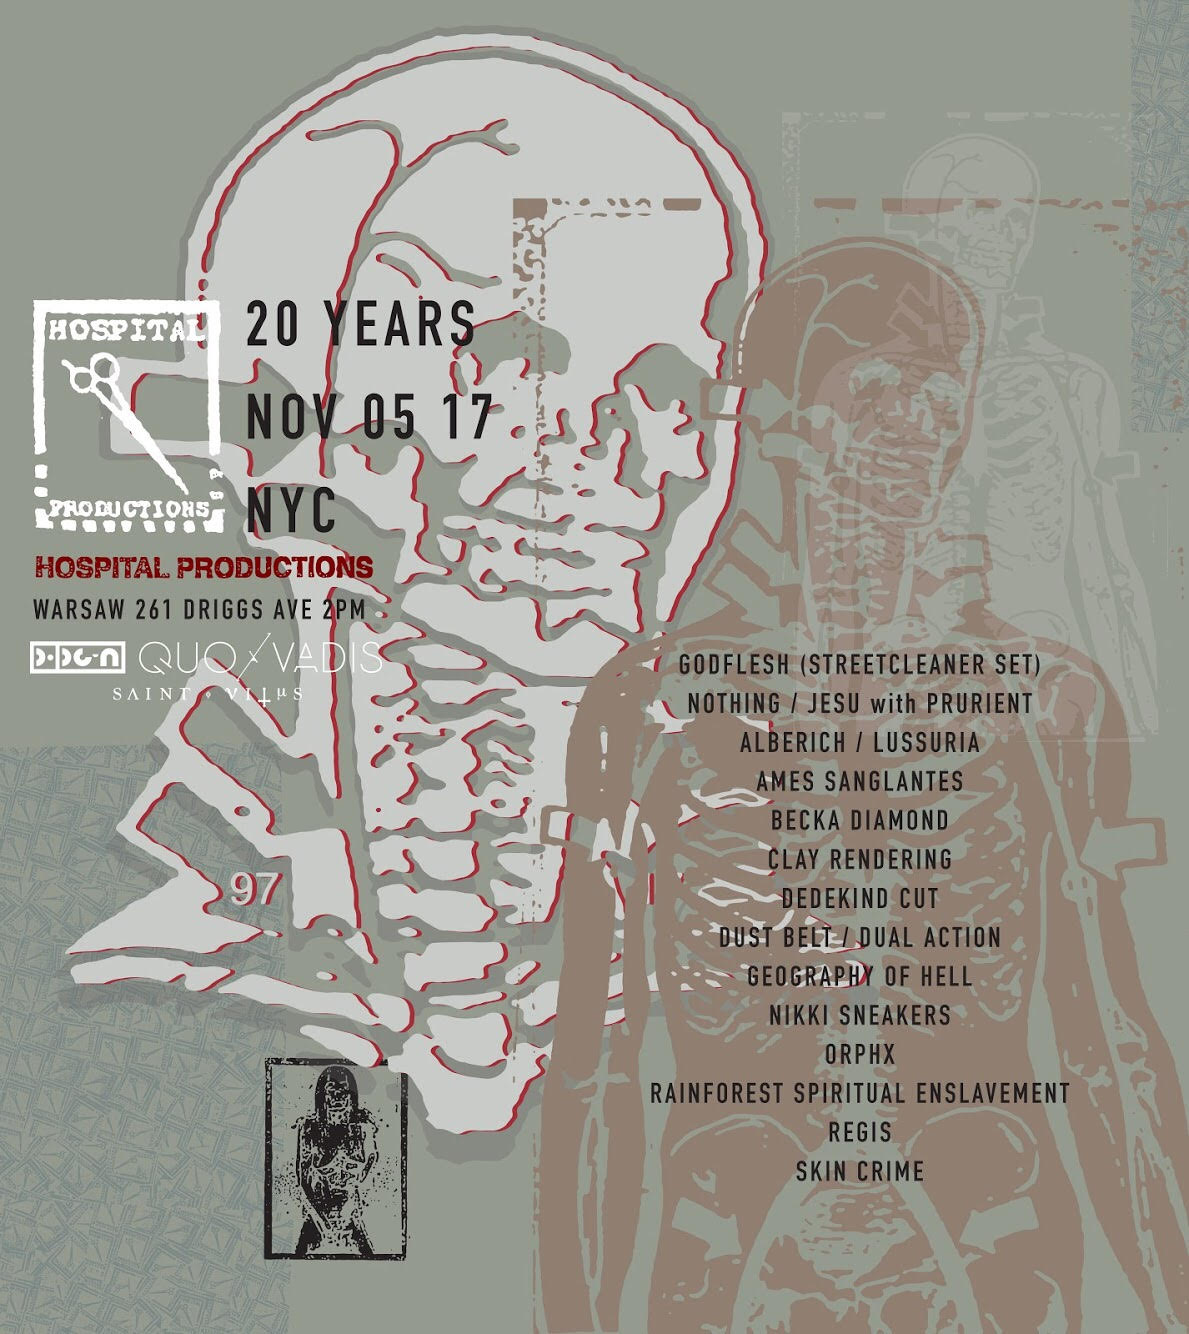 Hospital Records announce 20th anniversary show featuring Godflesh, Prurient, Regis, more